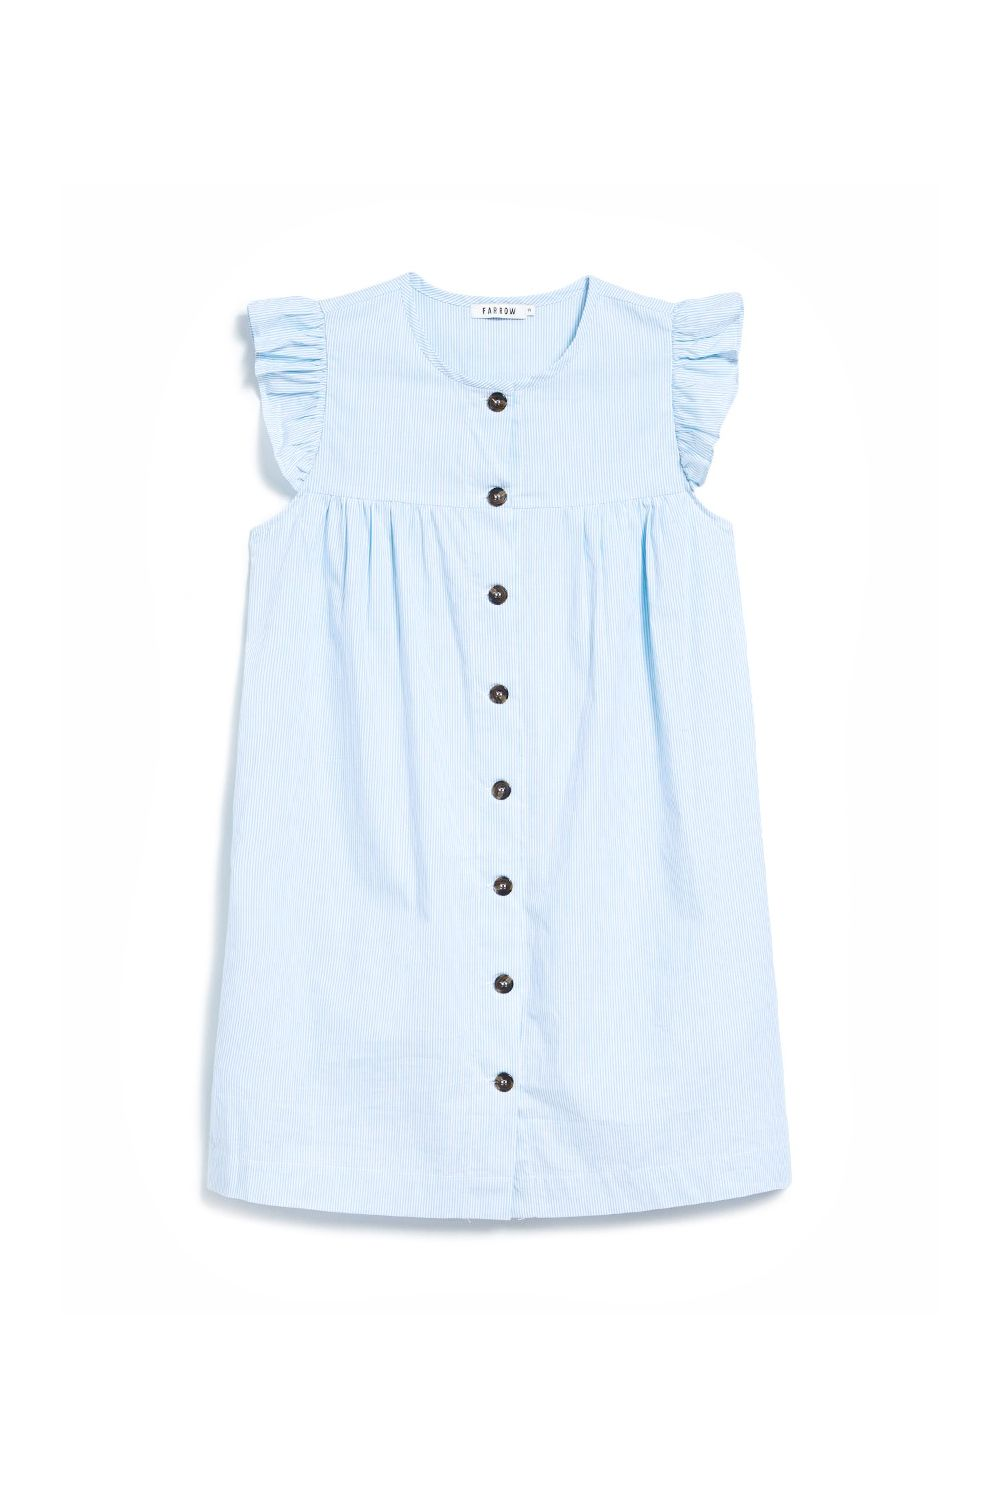 "<p>Looks like it belongs to a toddler, which is kind of the point. </p><p>Farrow, $68, <a href=""http://needsupply.com/womens/clothing/dresses/day/charles-dress-in-blue.html"" target=""_blank"" data-tracking-id=""recirc-text-link"">needsupply.com</a>.</p>"